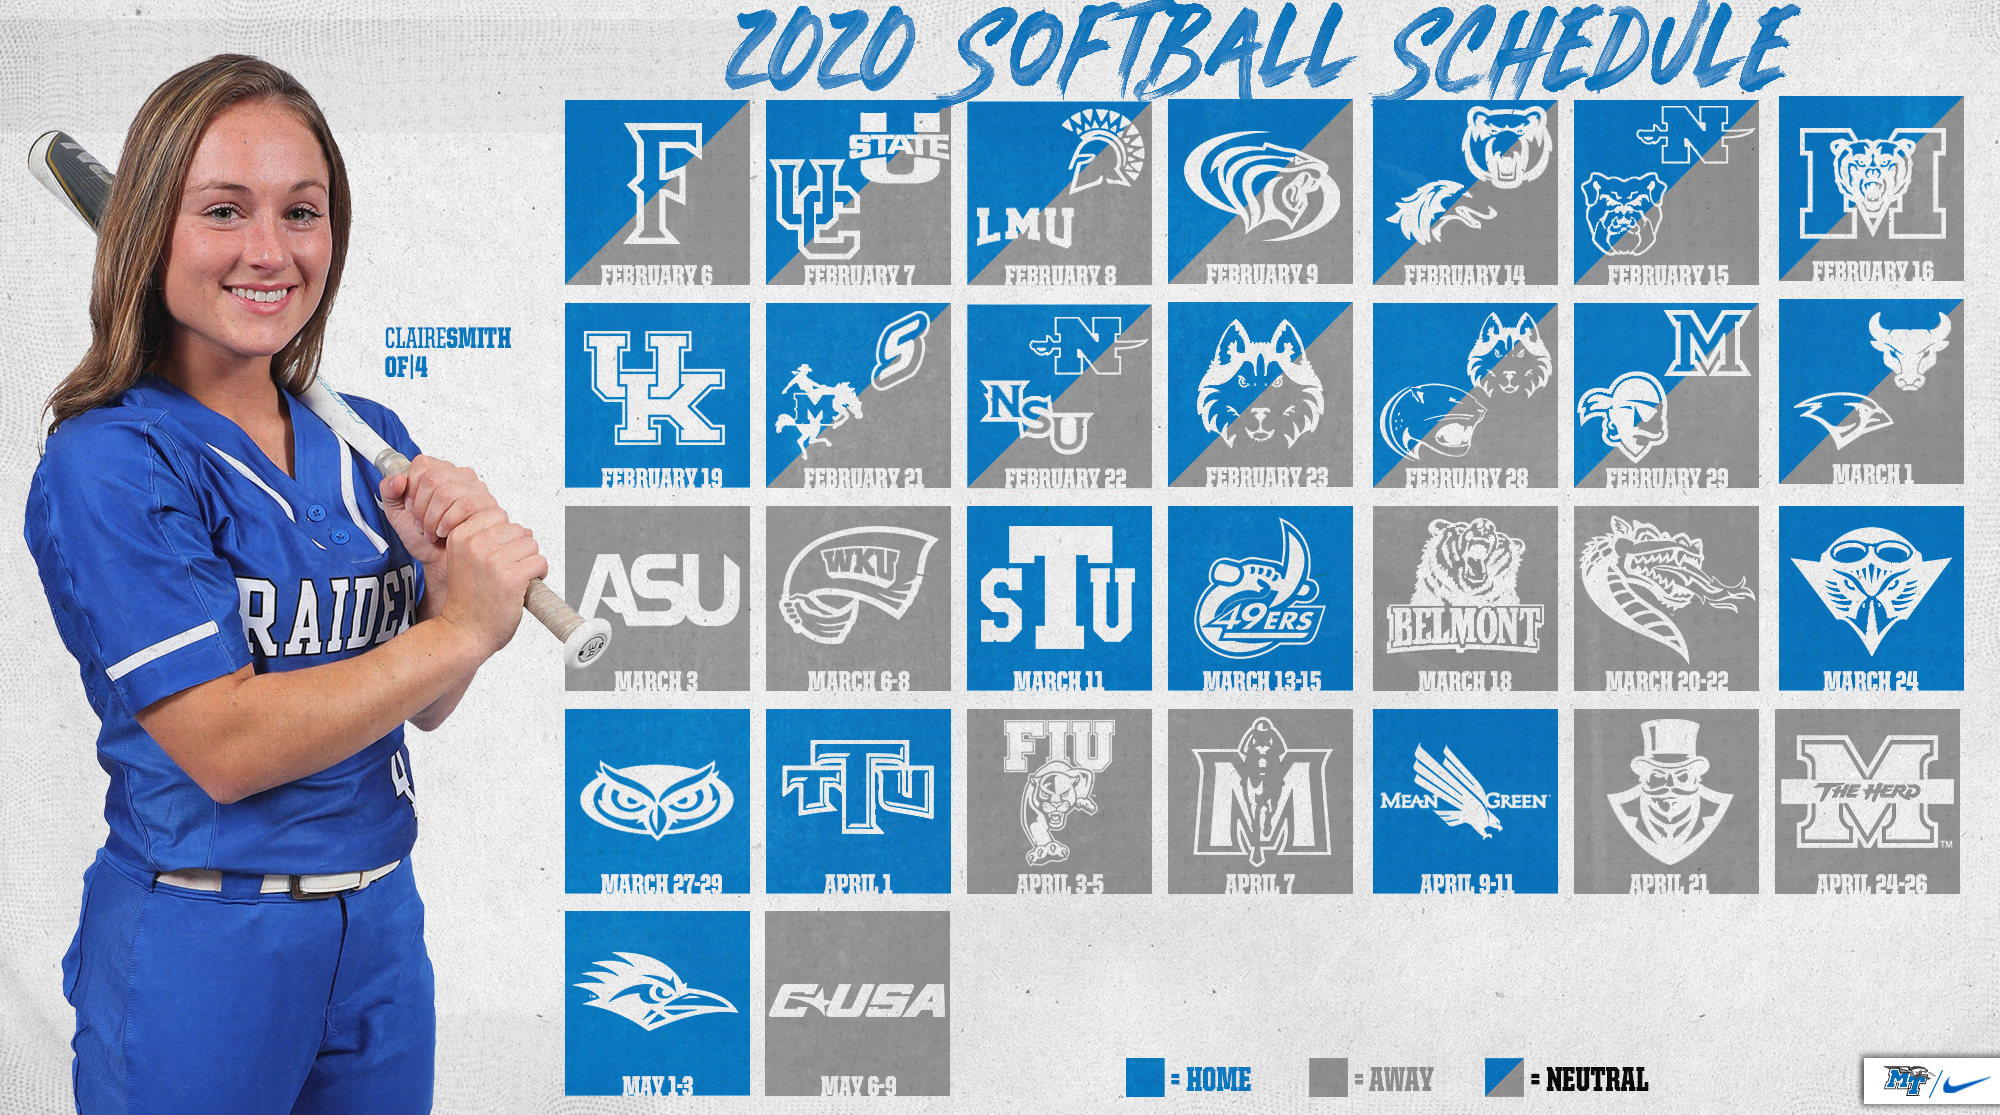 Mtsu Spring 2020 Schedule.Breeden Mt Softball Announce 2020 Slate Middle Tennessee